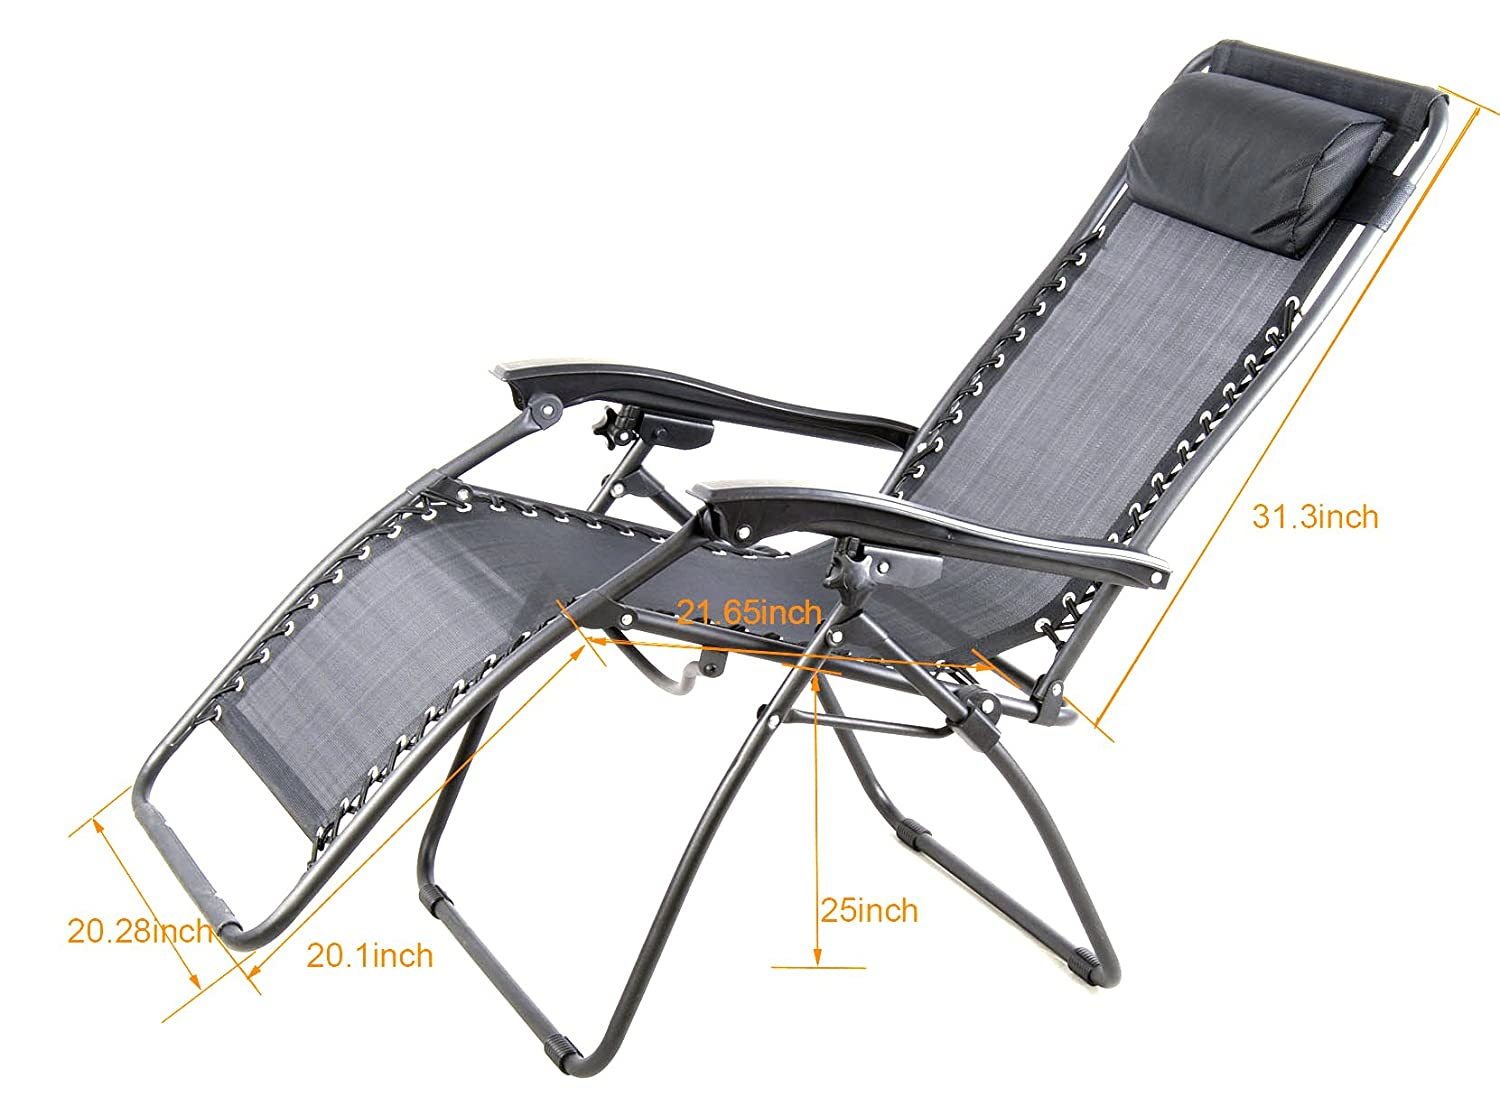 Amazon.com : Anti-Gravity Chair, Zero-Gravity Chair, Super Comfortable,  Lounge Patio Chairs, Outdoor Yard Beach Garden, Folding Chair With Cup  Holder ... - Amazon.com : Anti-Gravity Chair, Zero-Gravity Chair, Super